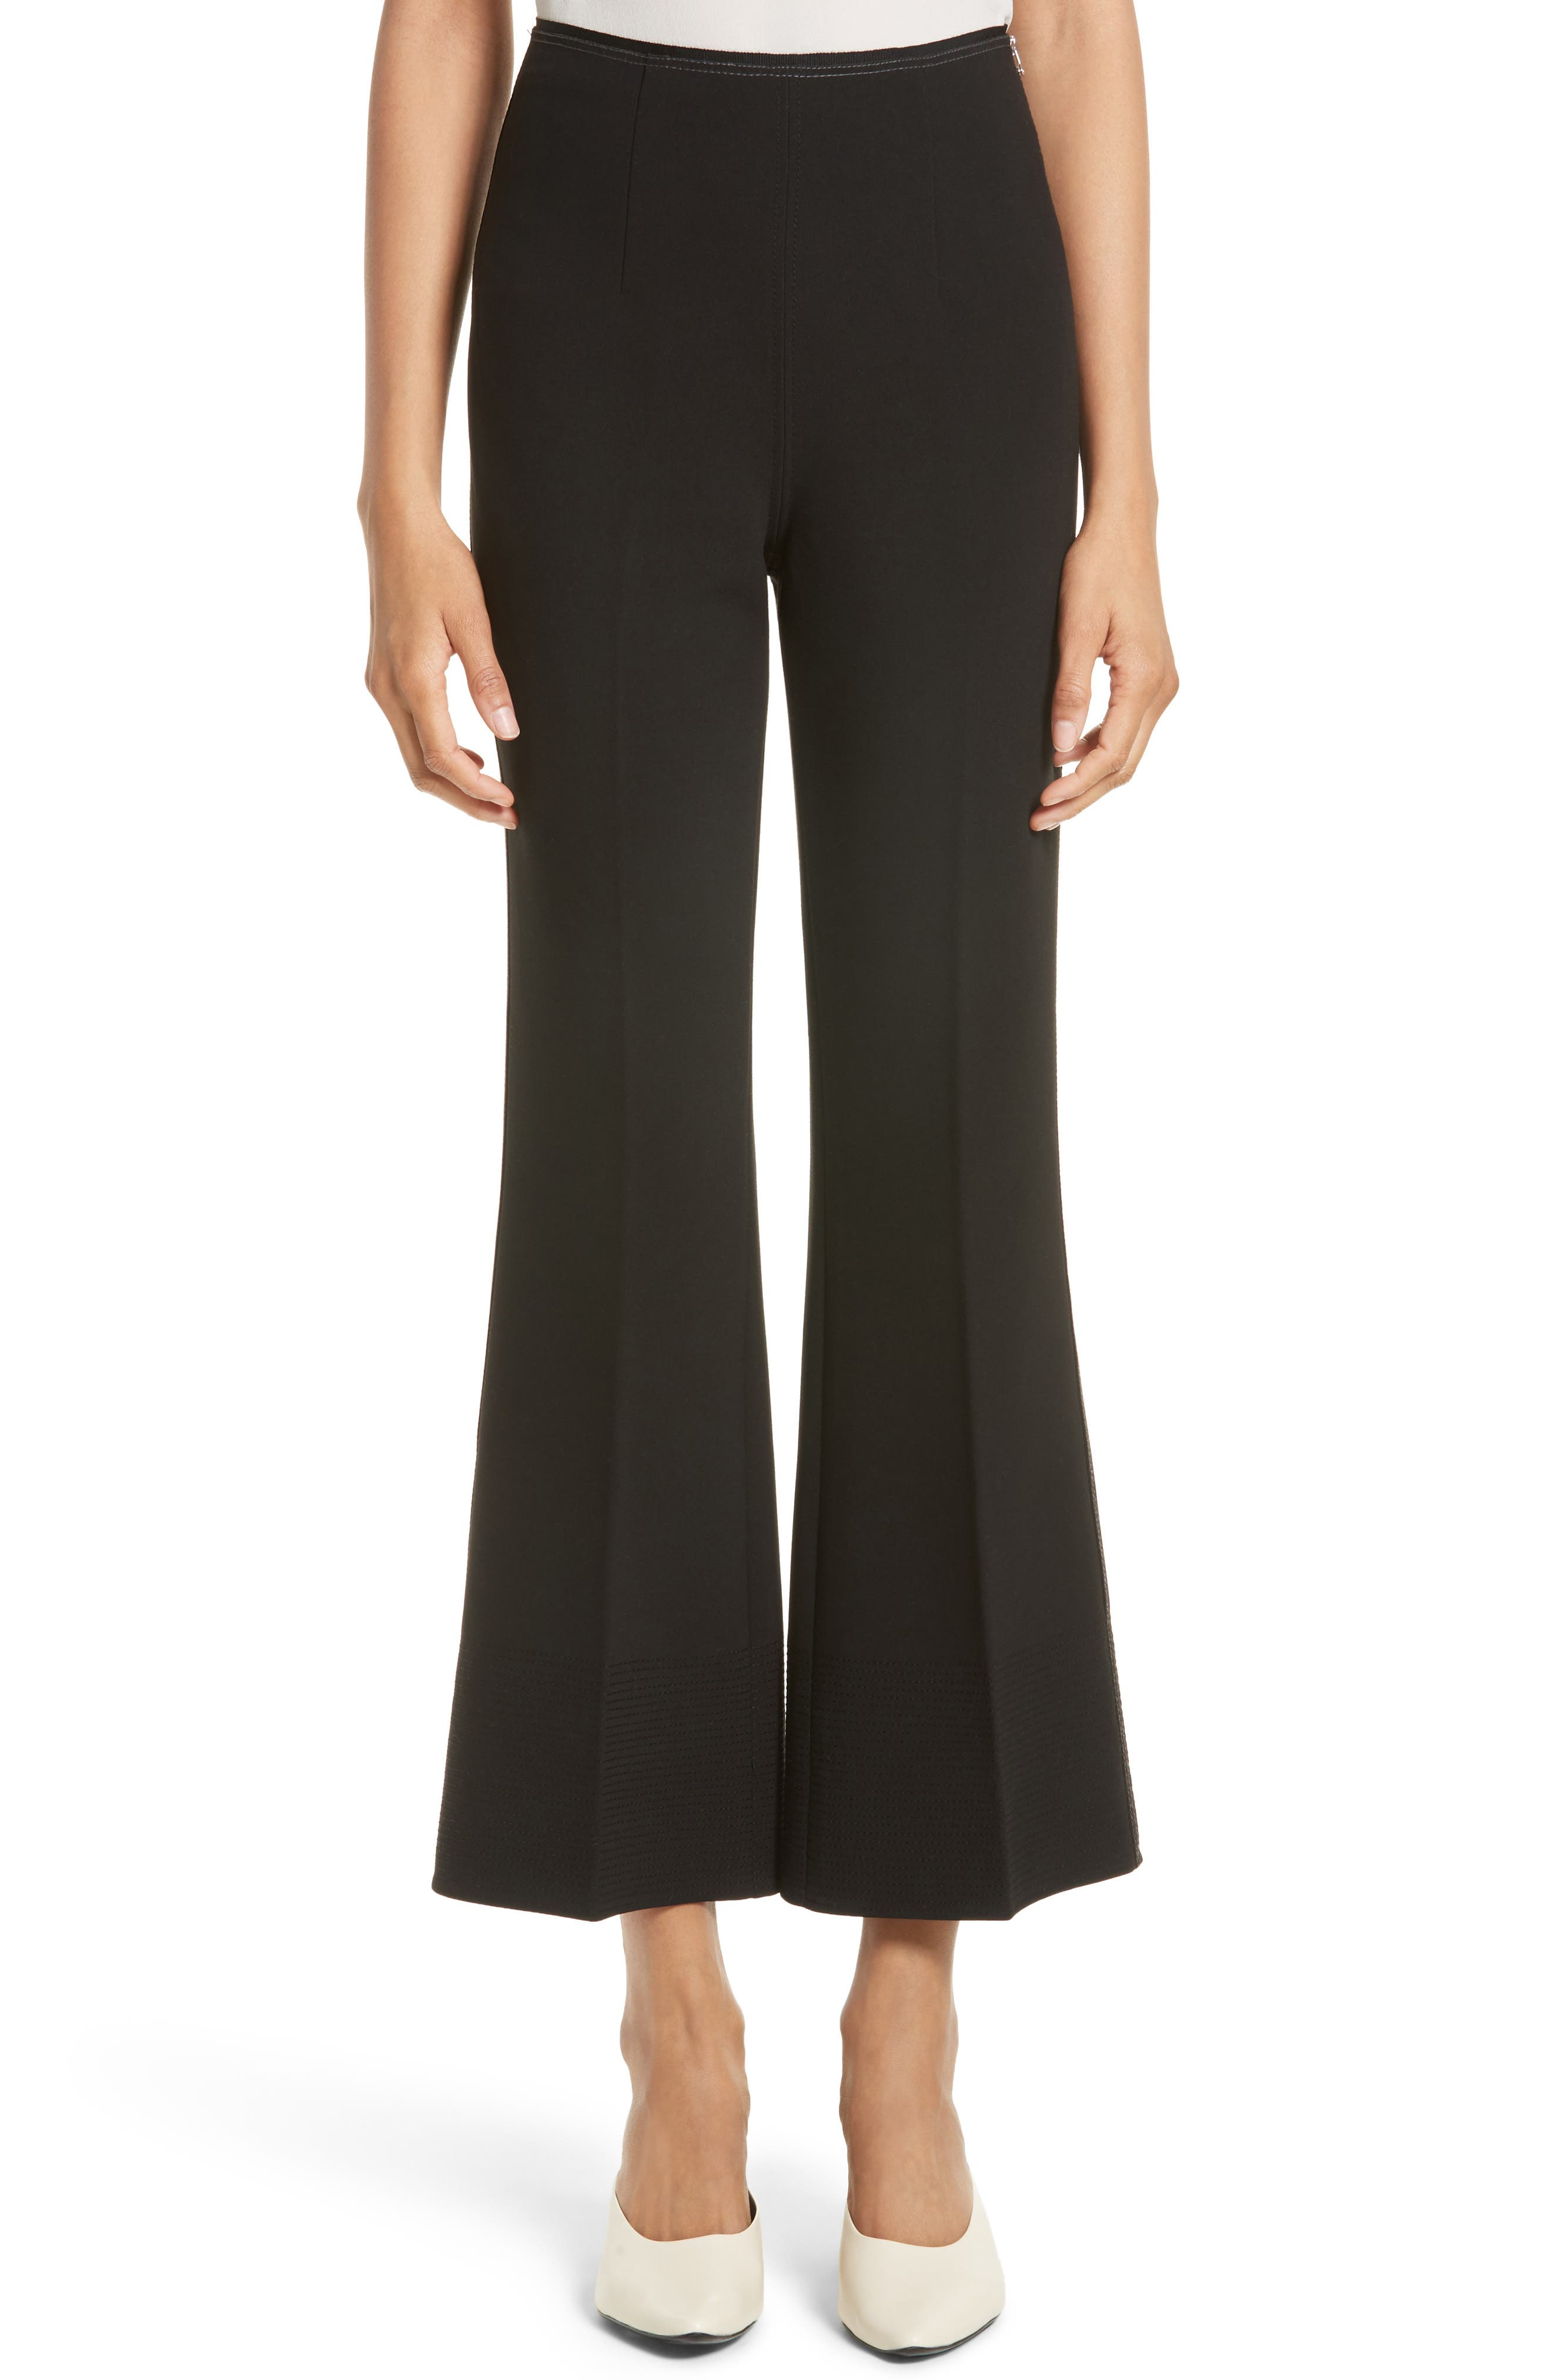 Elizabeth and James Mott Crop Flare Pants